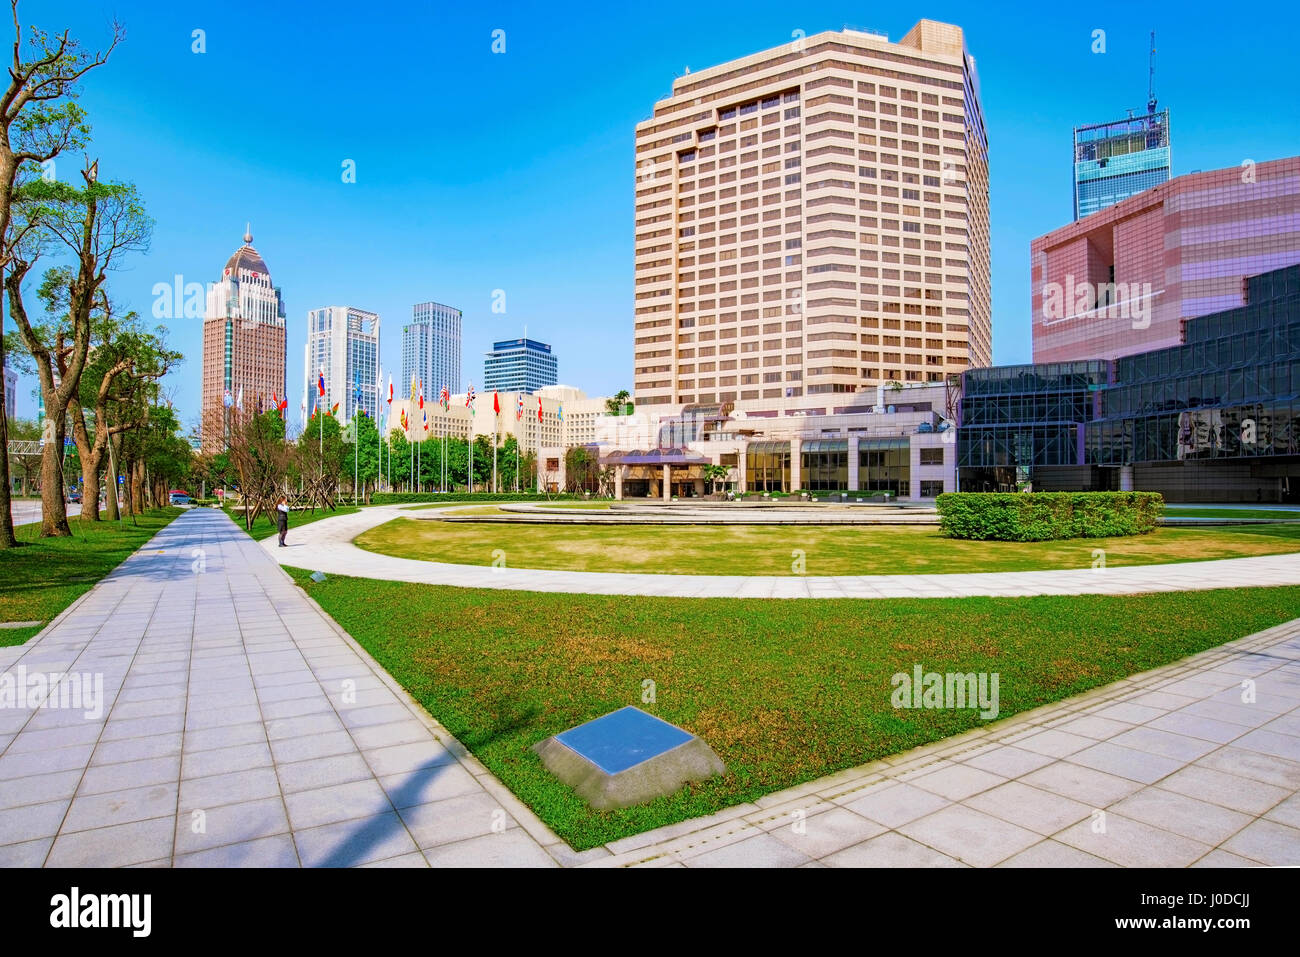 TAIPEI, TAIWAN - MARCH 28: Architecture of the Xinyi financial district outside the World Trade Center building - Stock Image